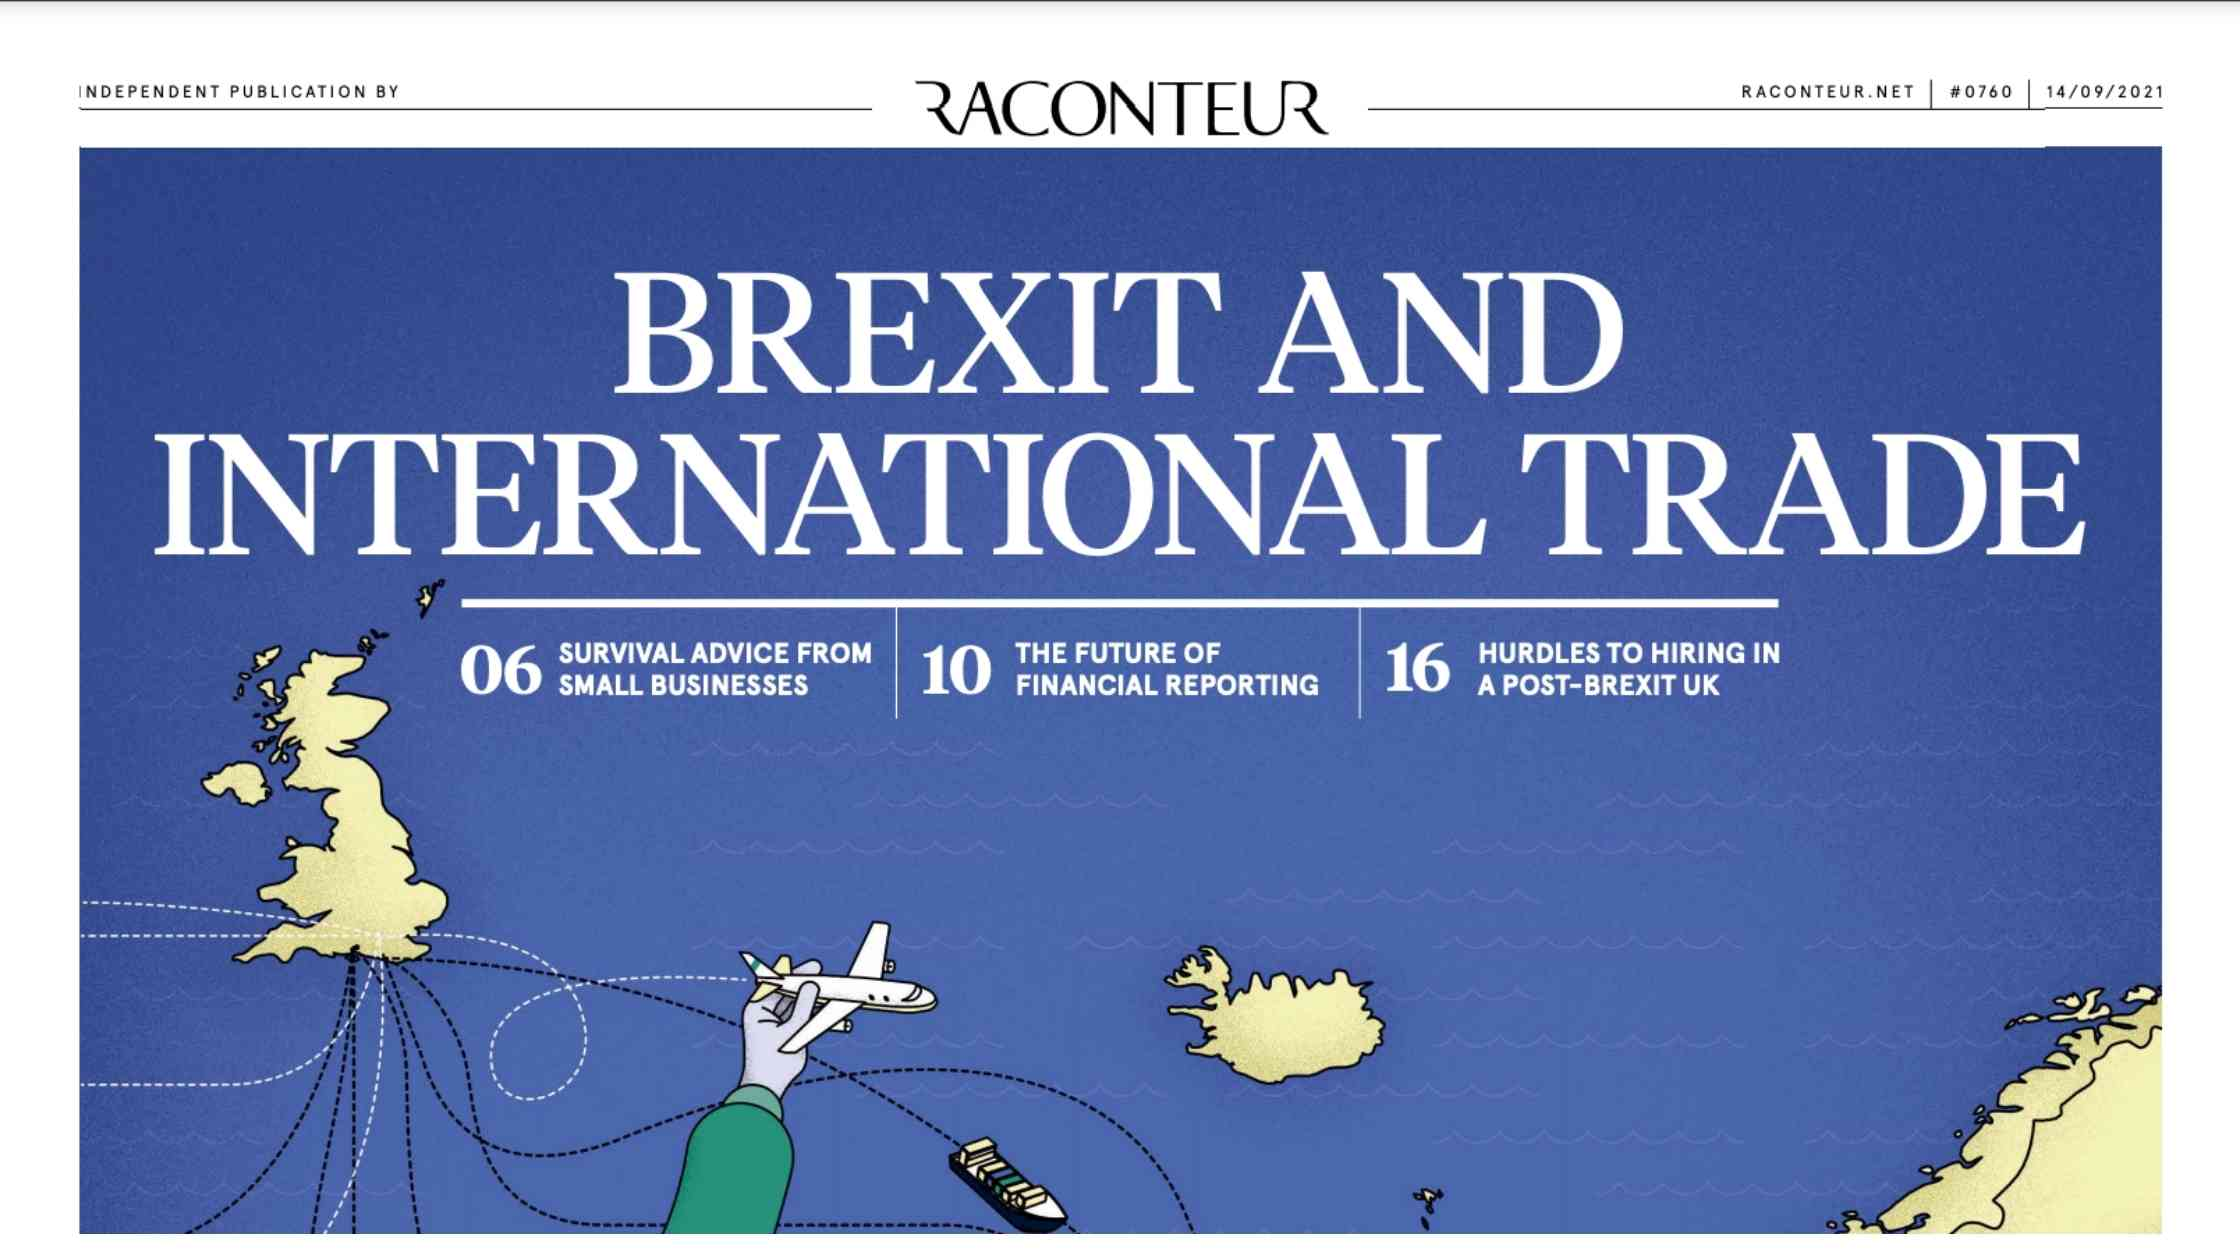 Brexit and International Trade